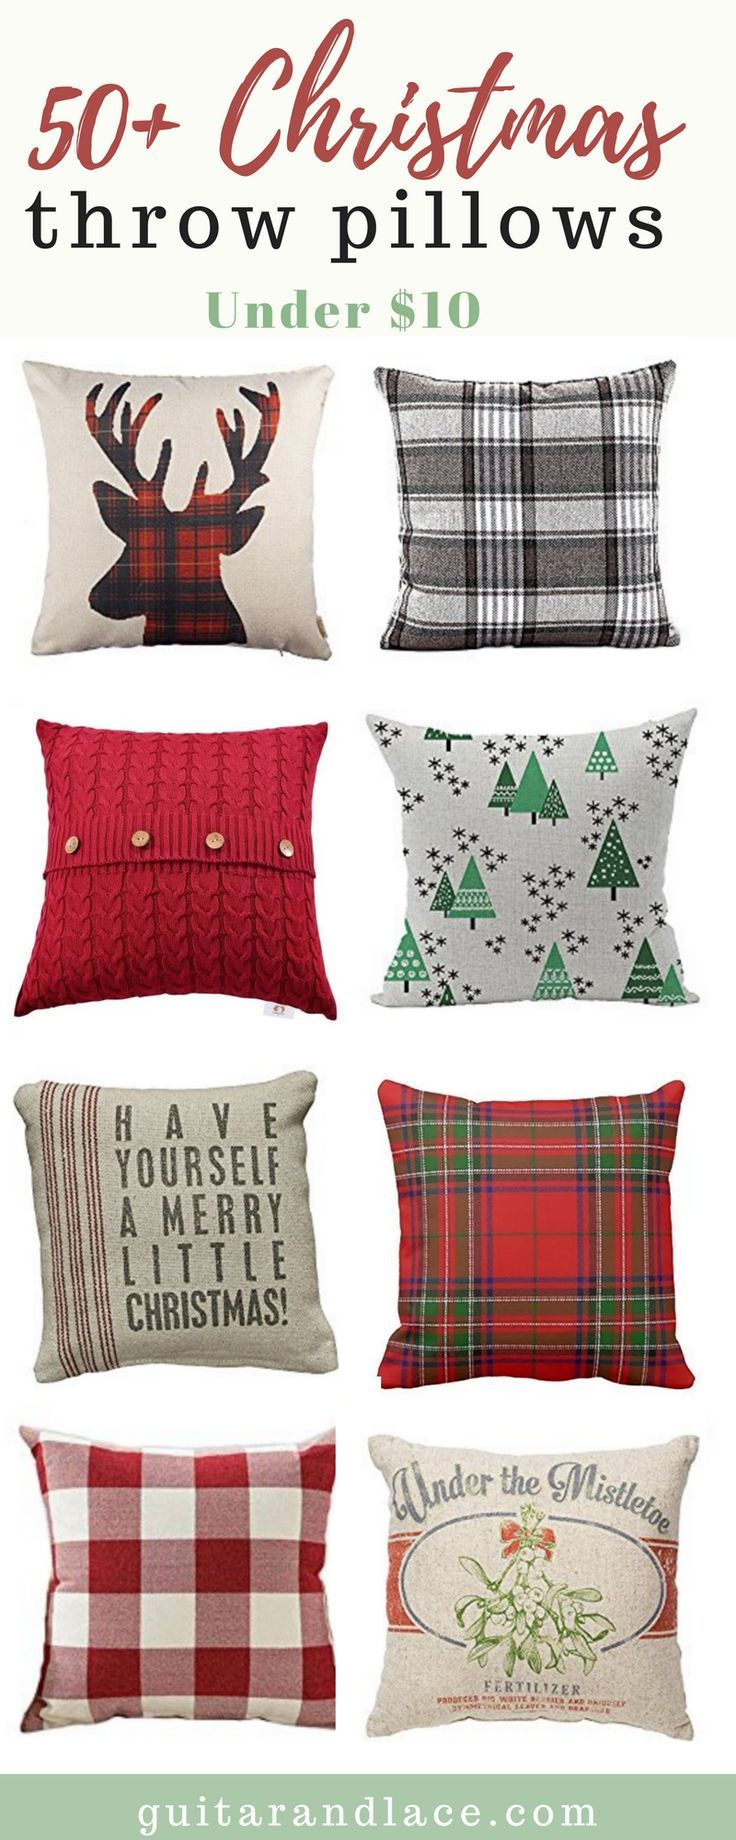 Cheap Decorative Pillows Under $10 Magnificent Christmas Throw Pillow Shopping Guide  Hygge Christmas Farmhouse Design Inspiration